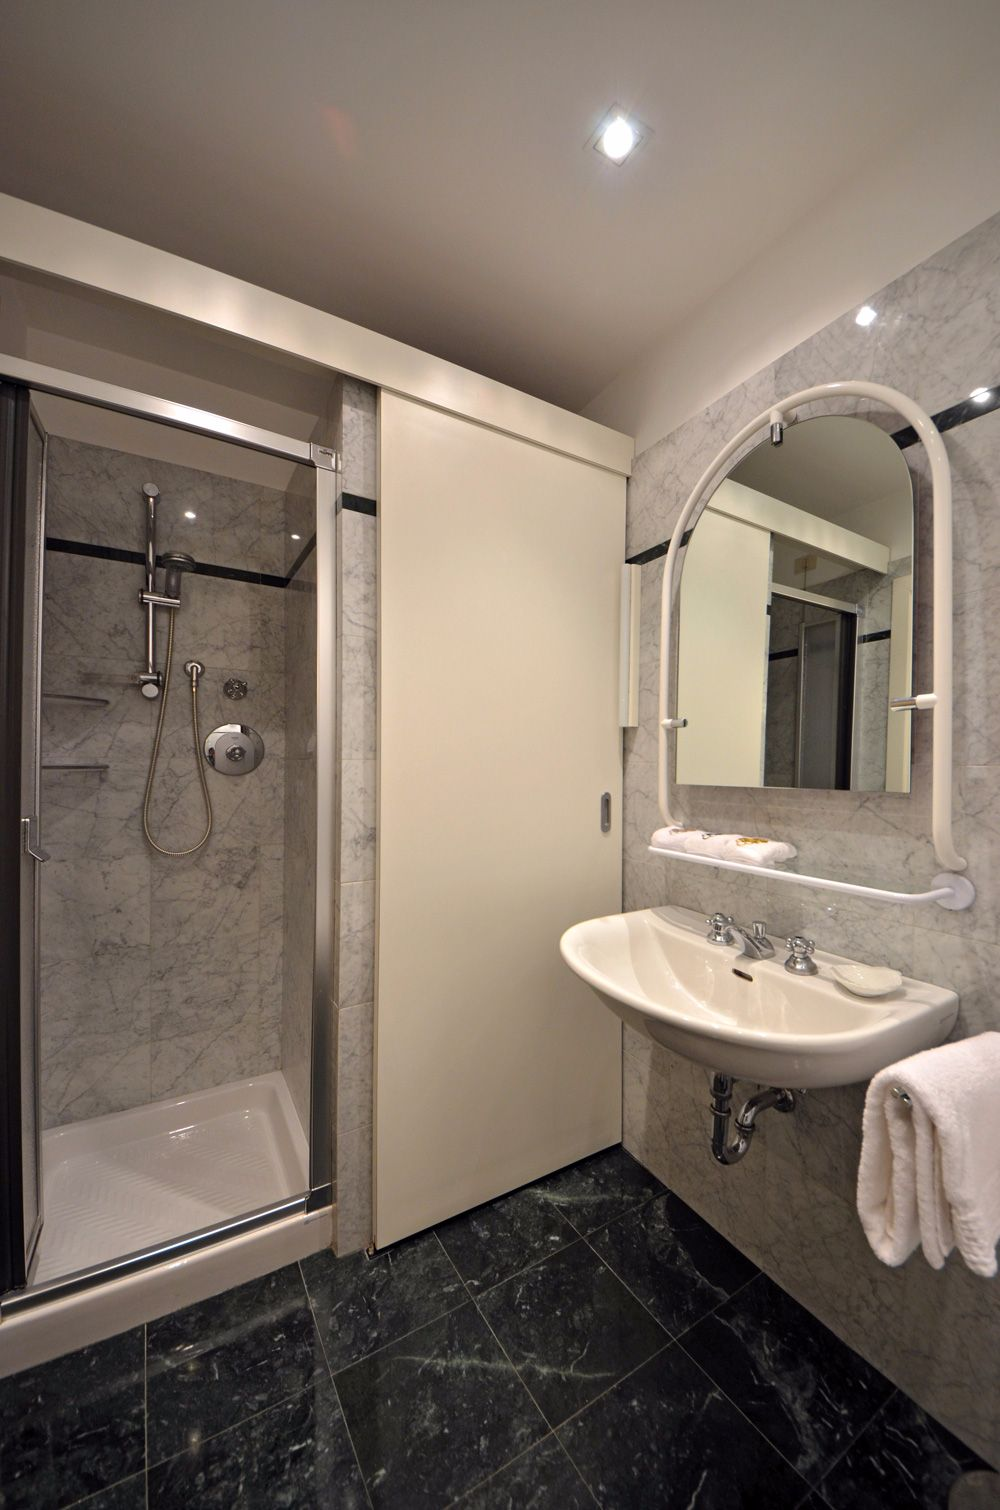 second smaller bathroom with shower